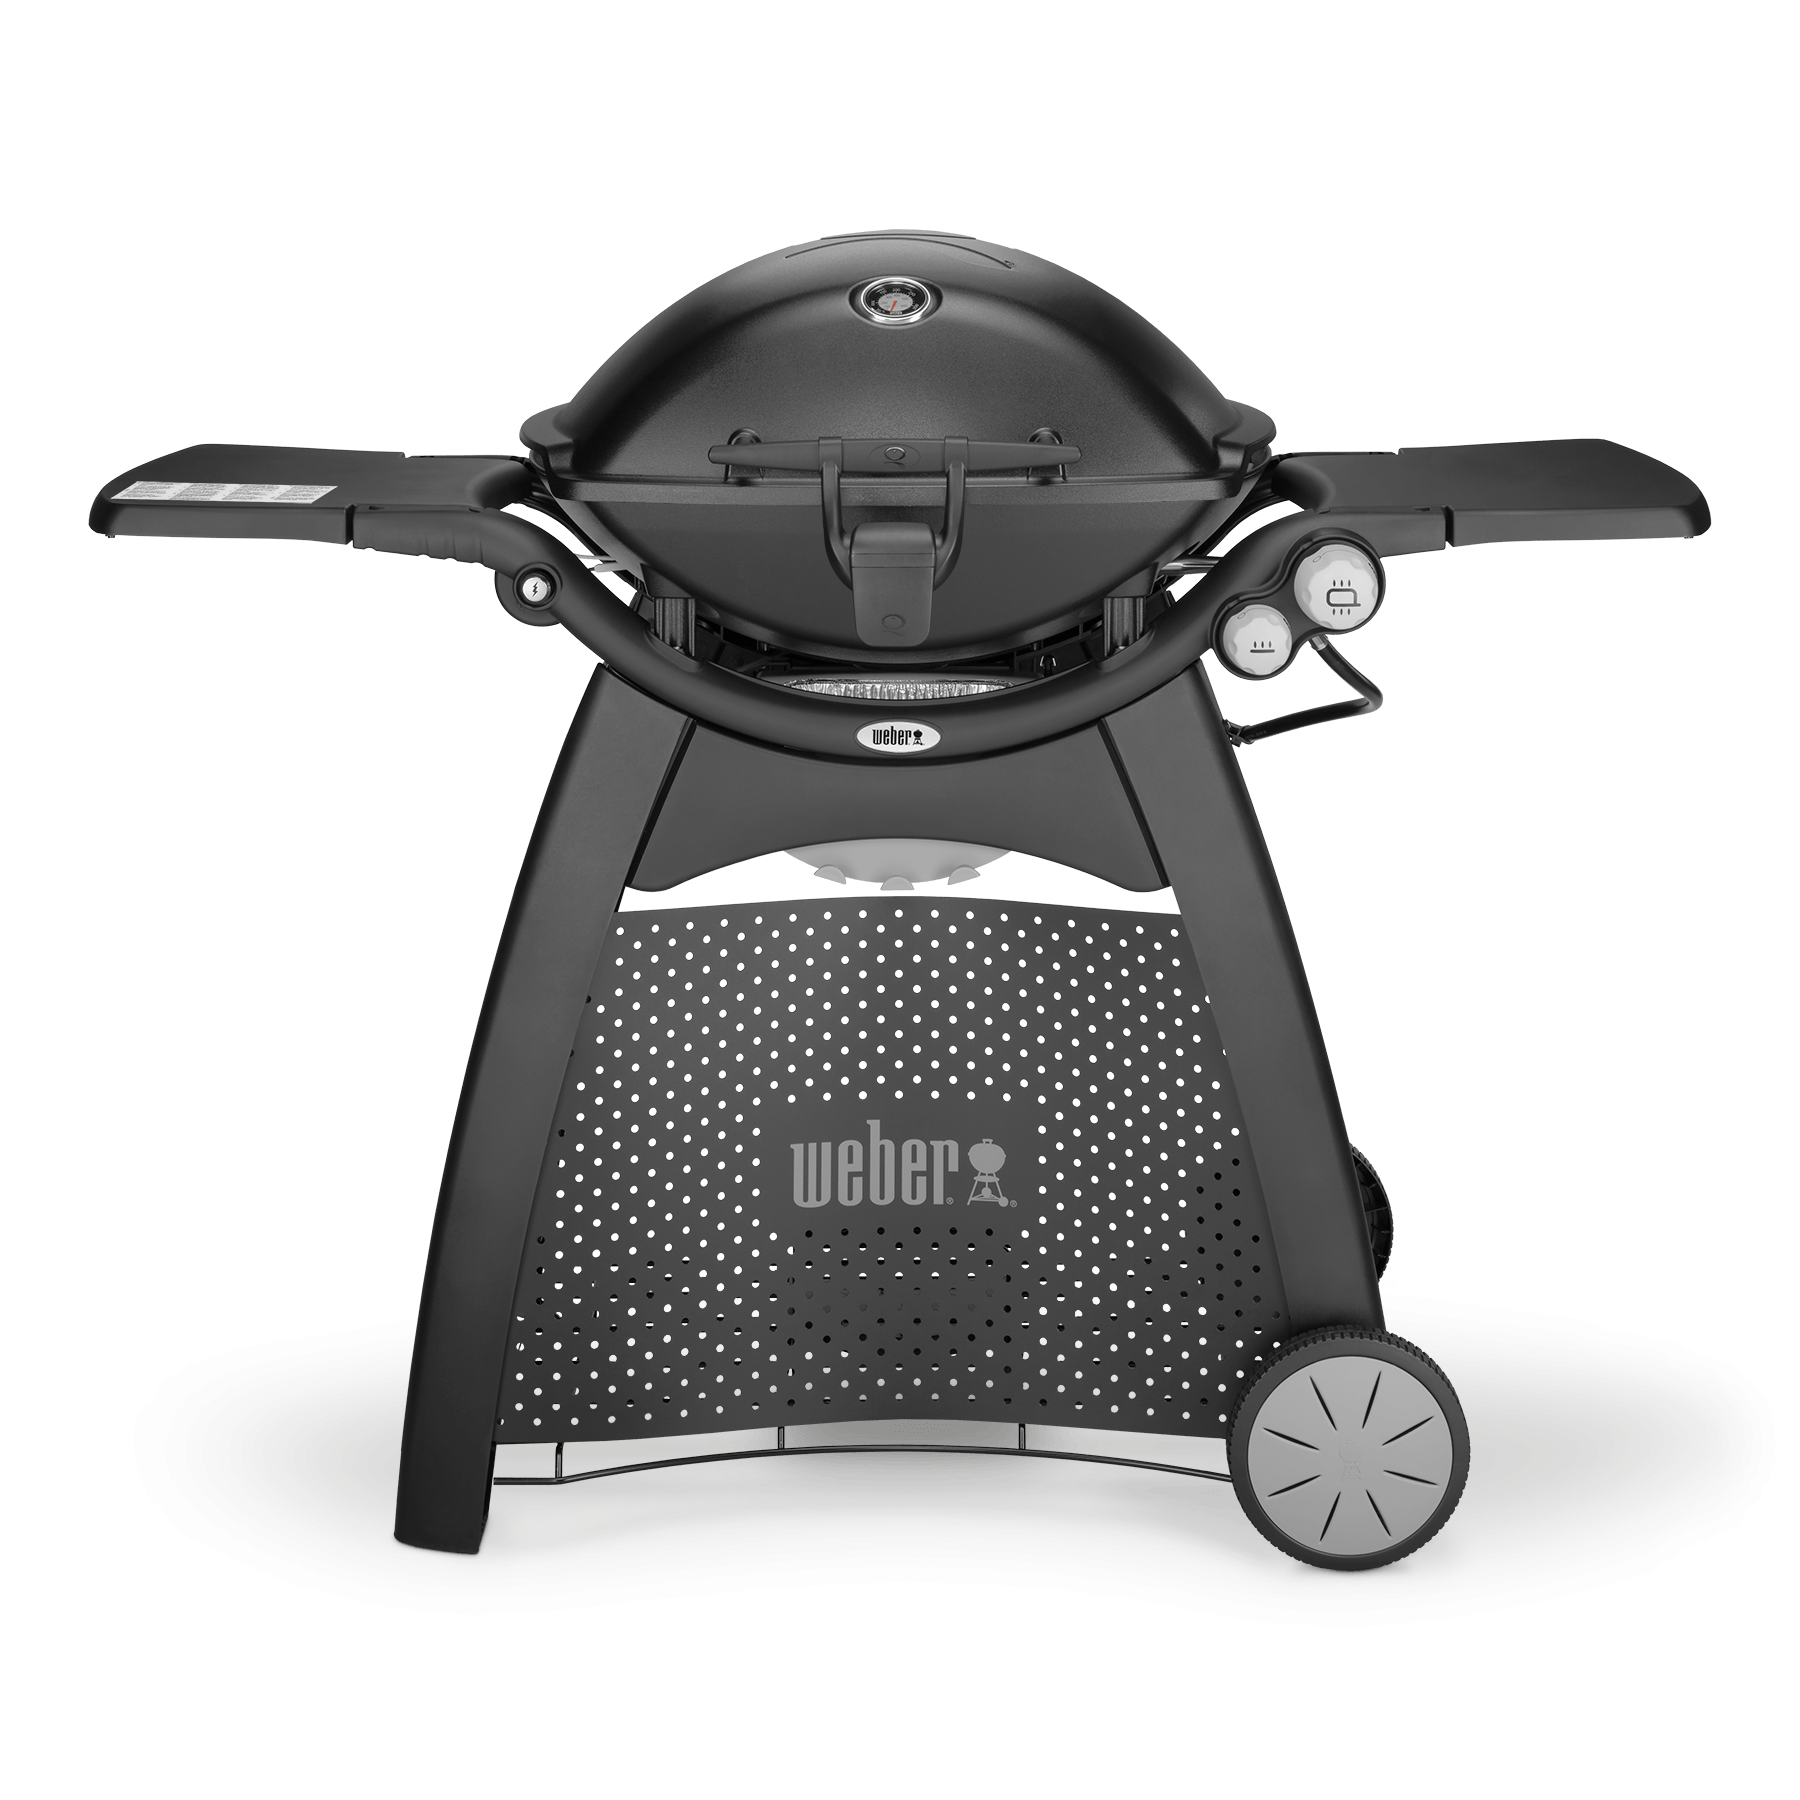 Weber® Q 3200 Gas Barbecue